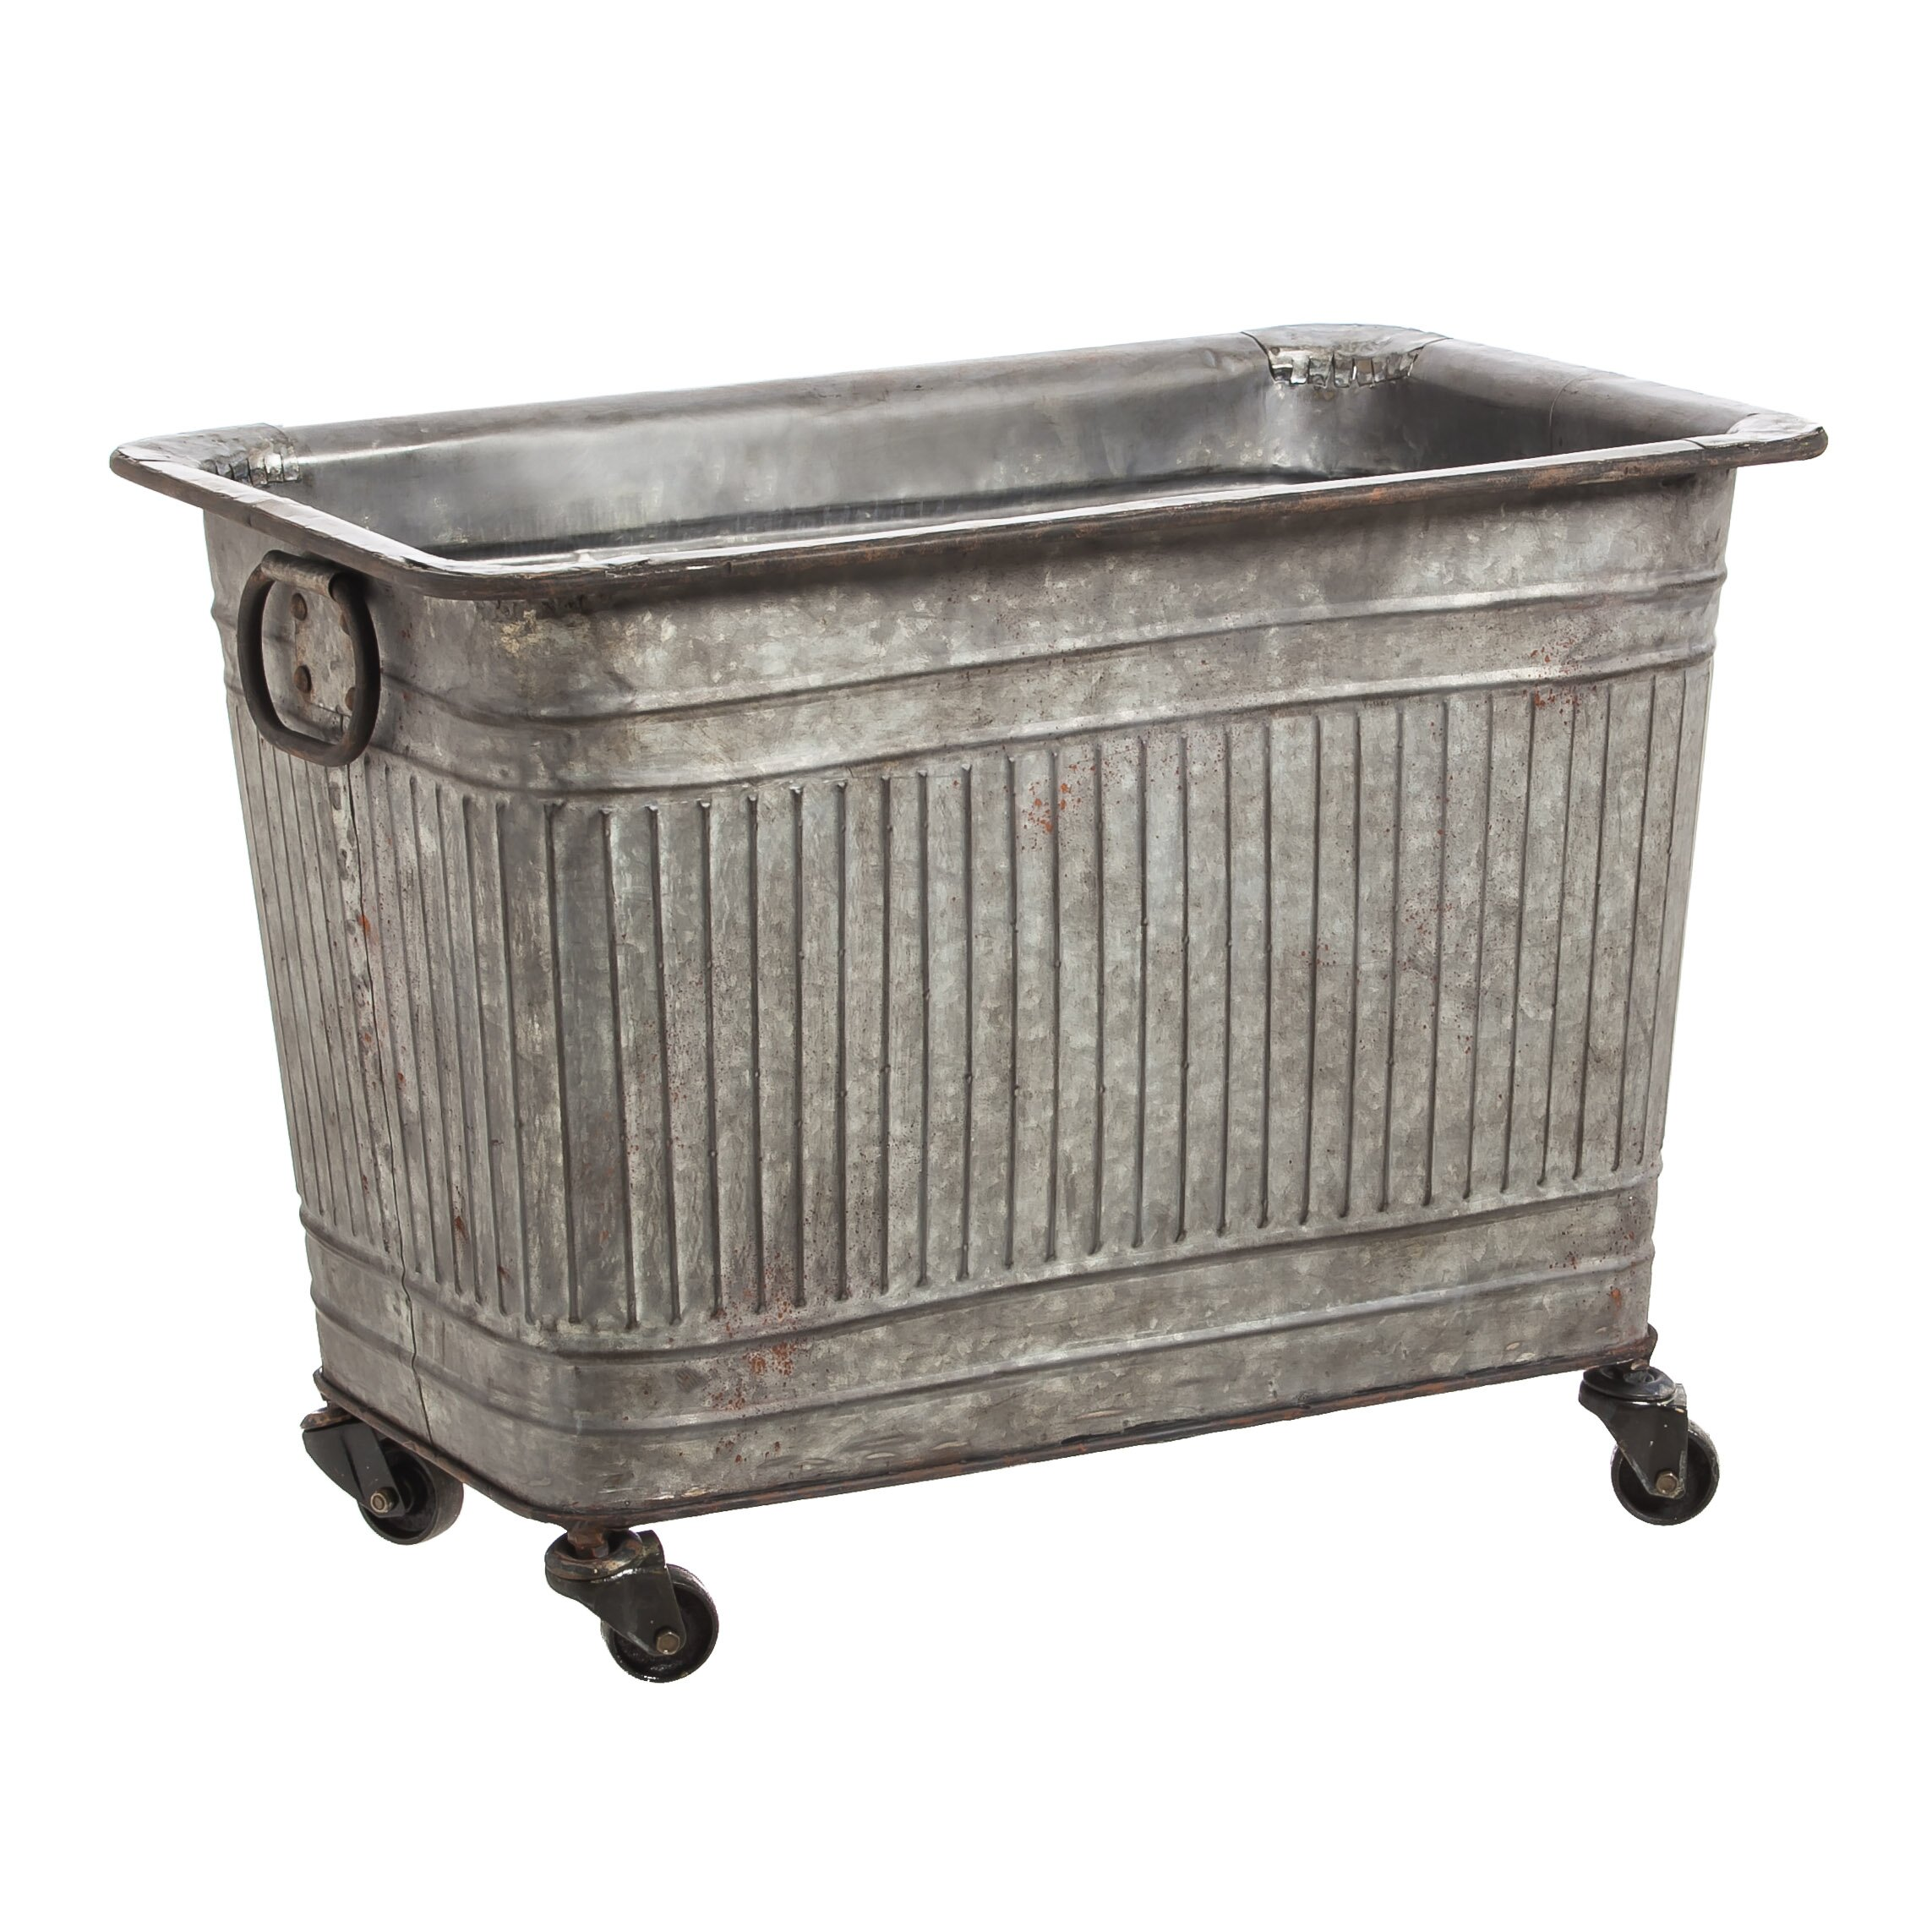 Large Galvanized Metal Tub On Wheels Wayfair